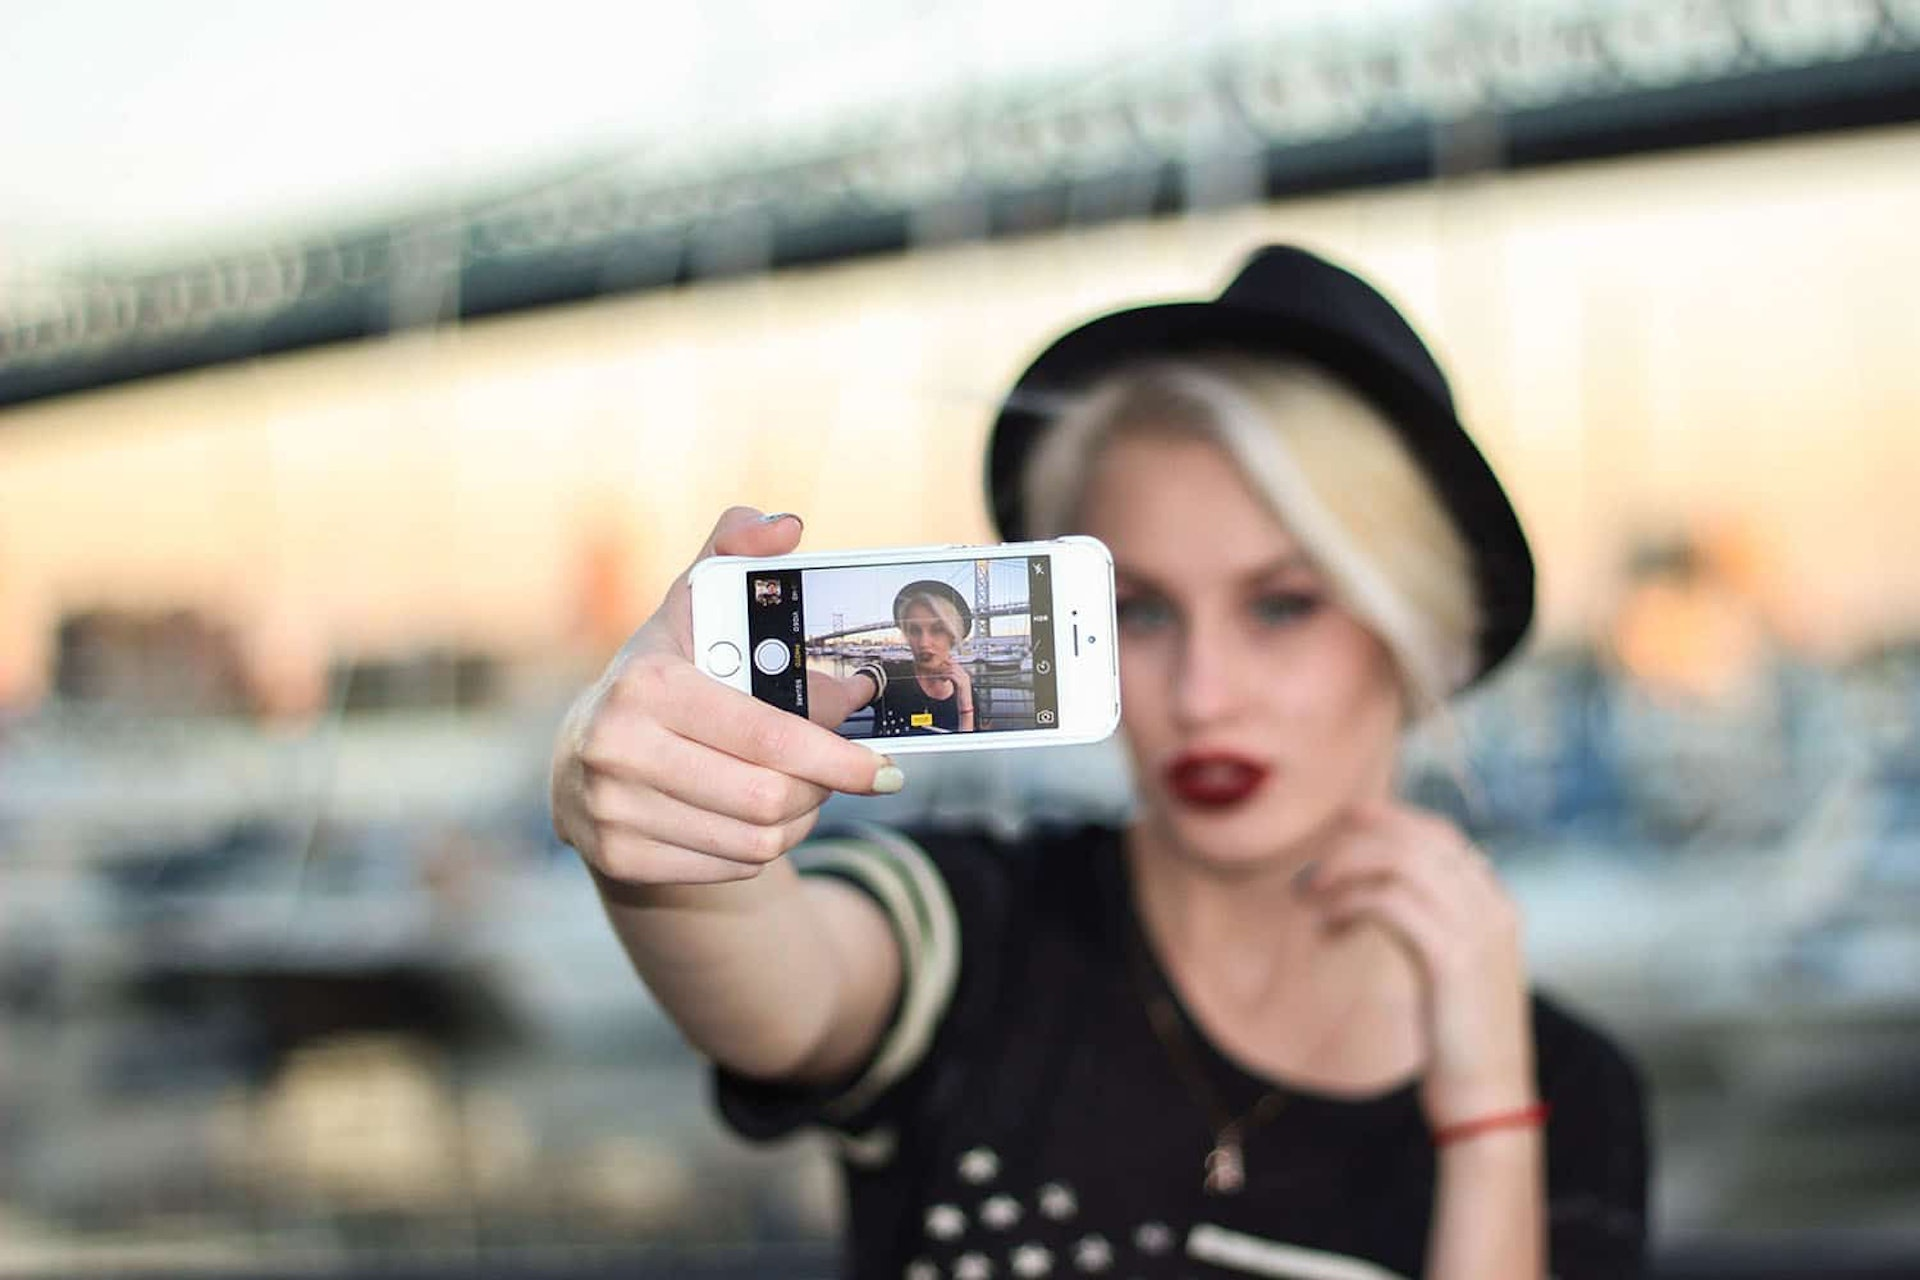 Woman taking a selfie on a smartphone